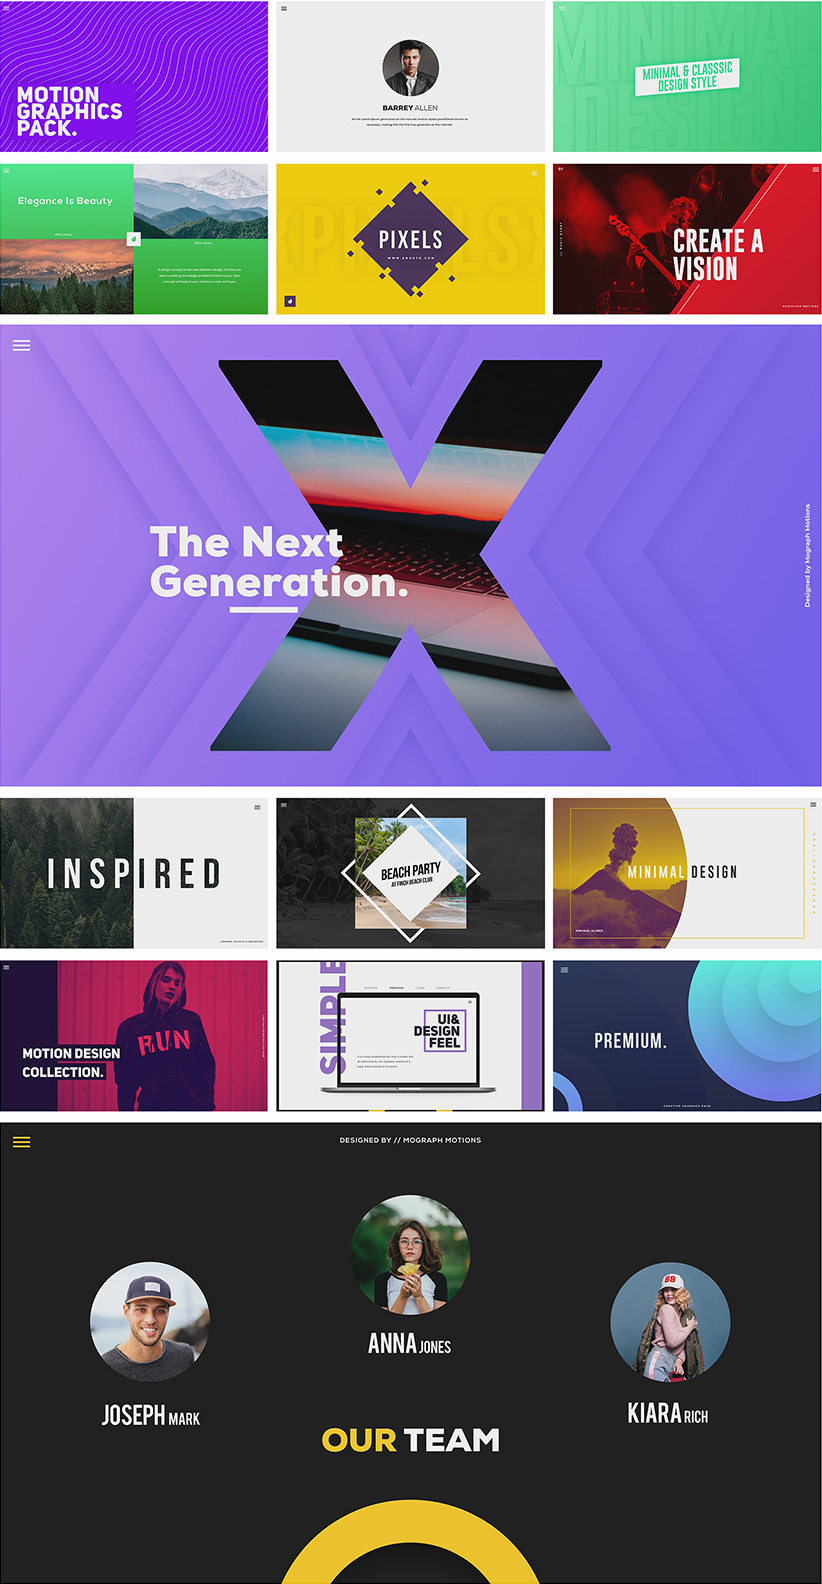 Motion Graphics Pack V2 - 7